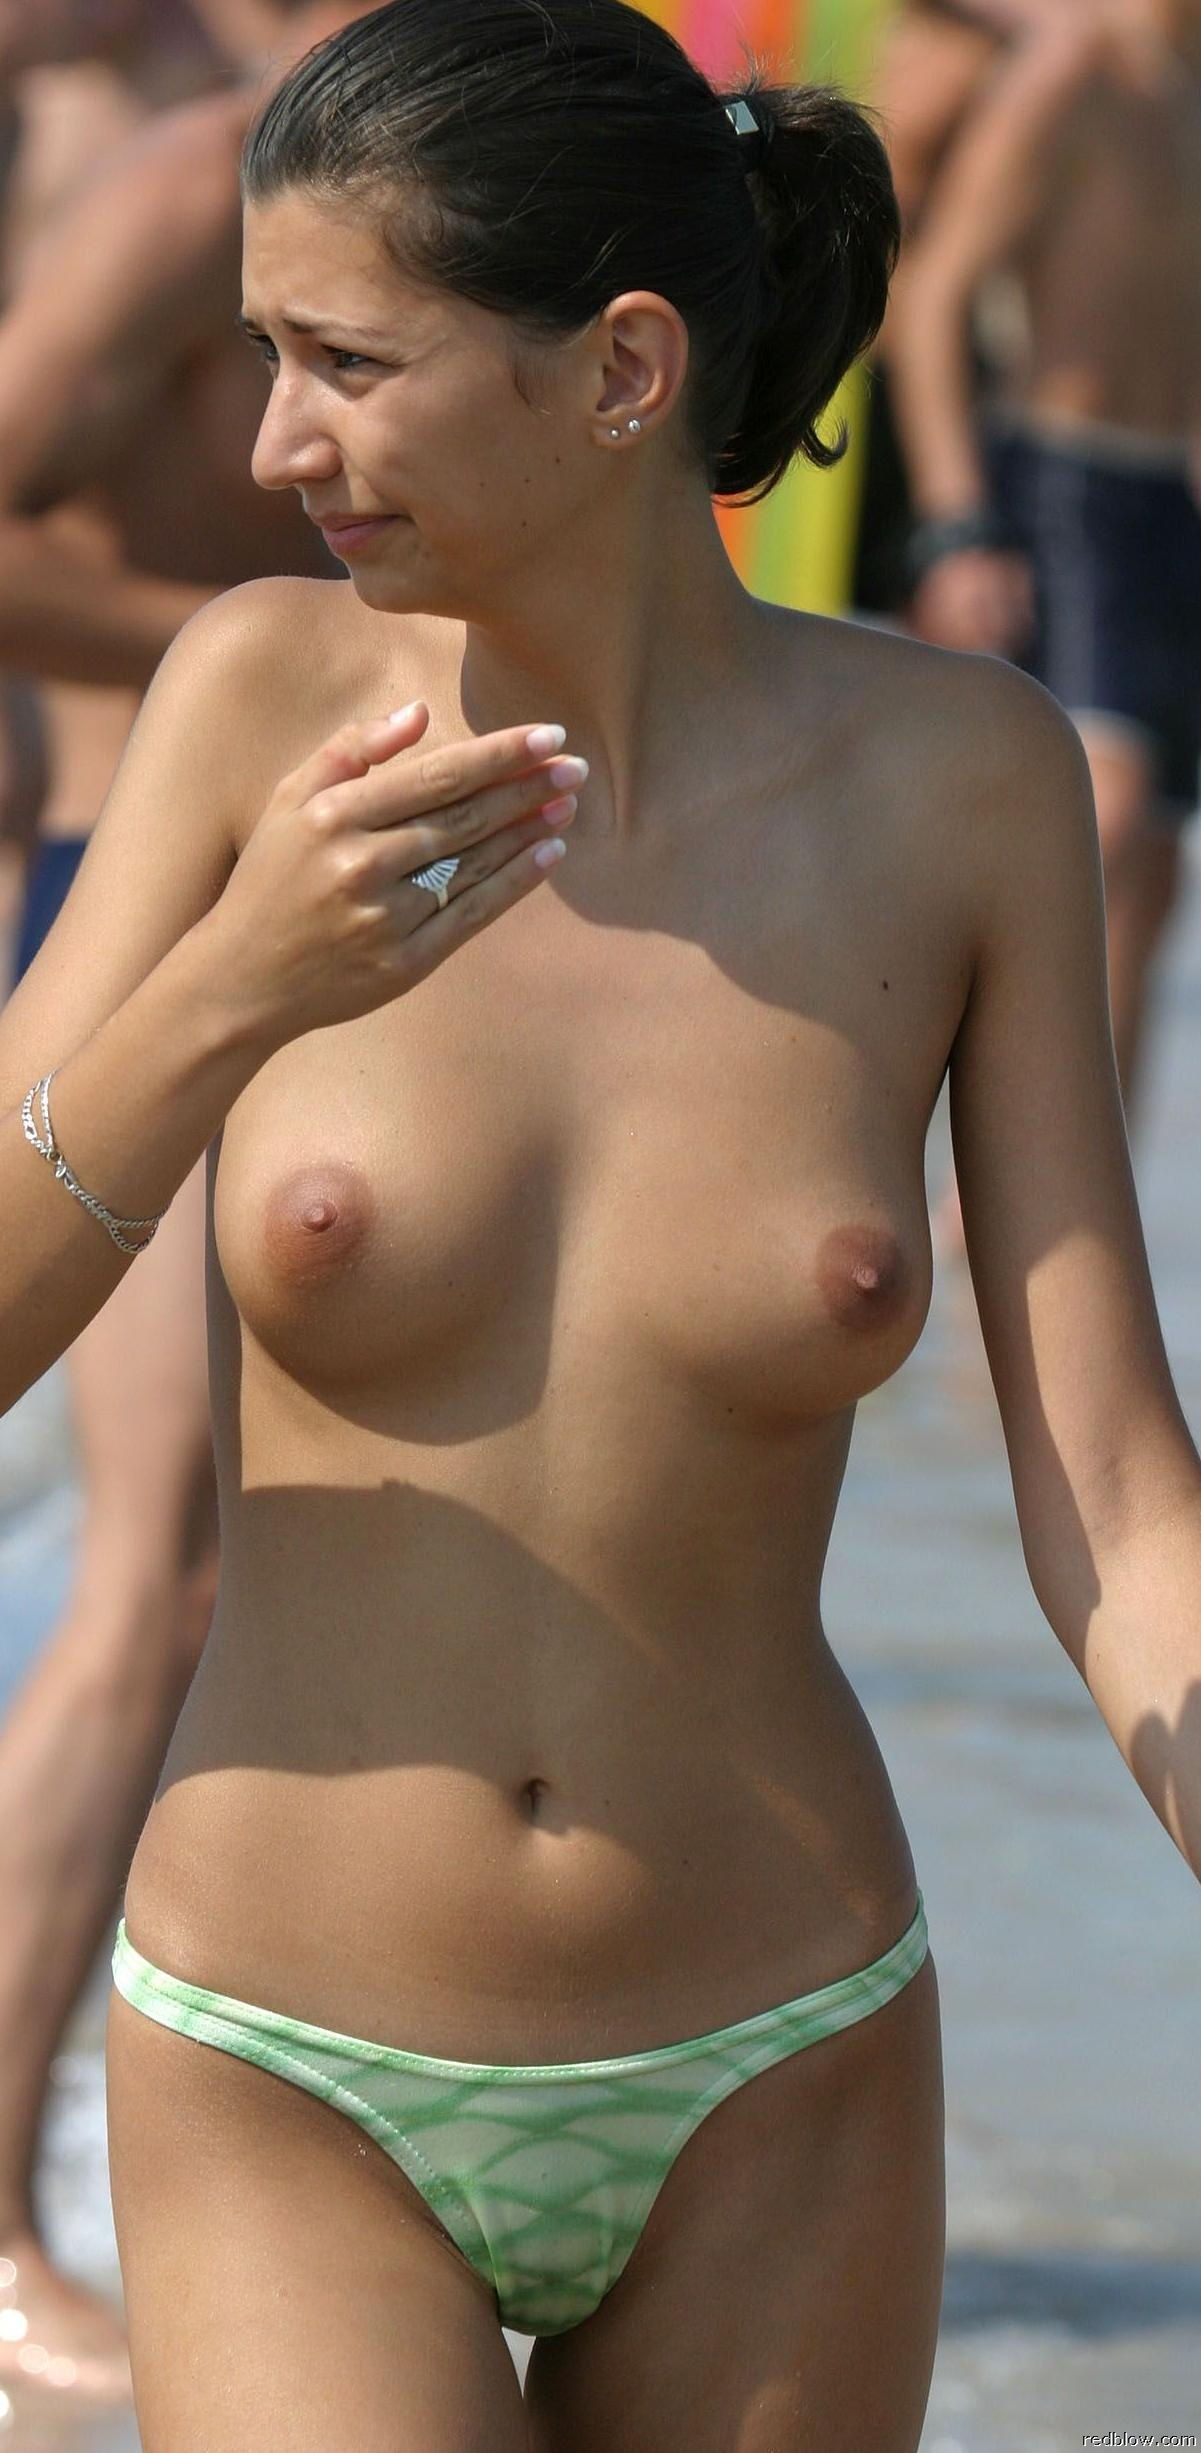 Nude beach swingers beach 5